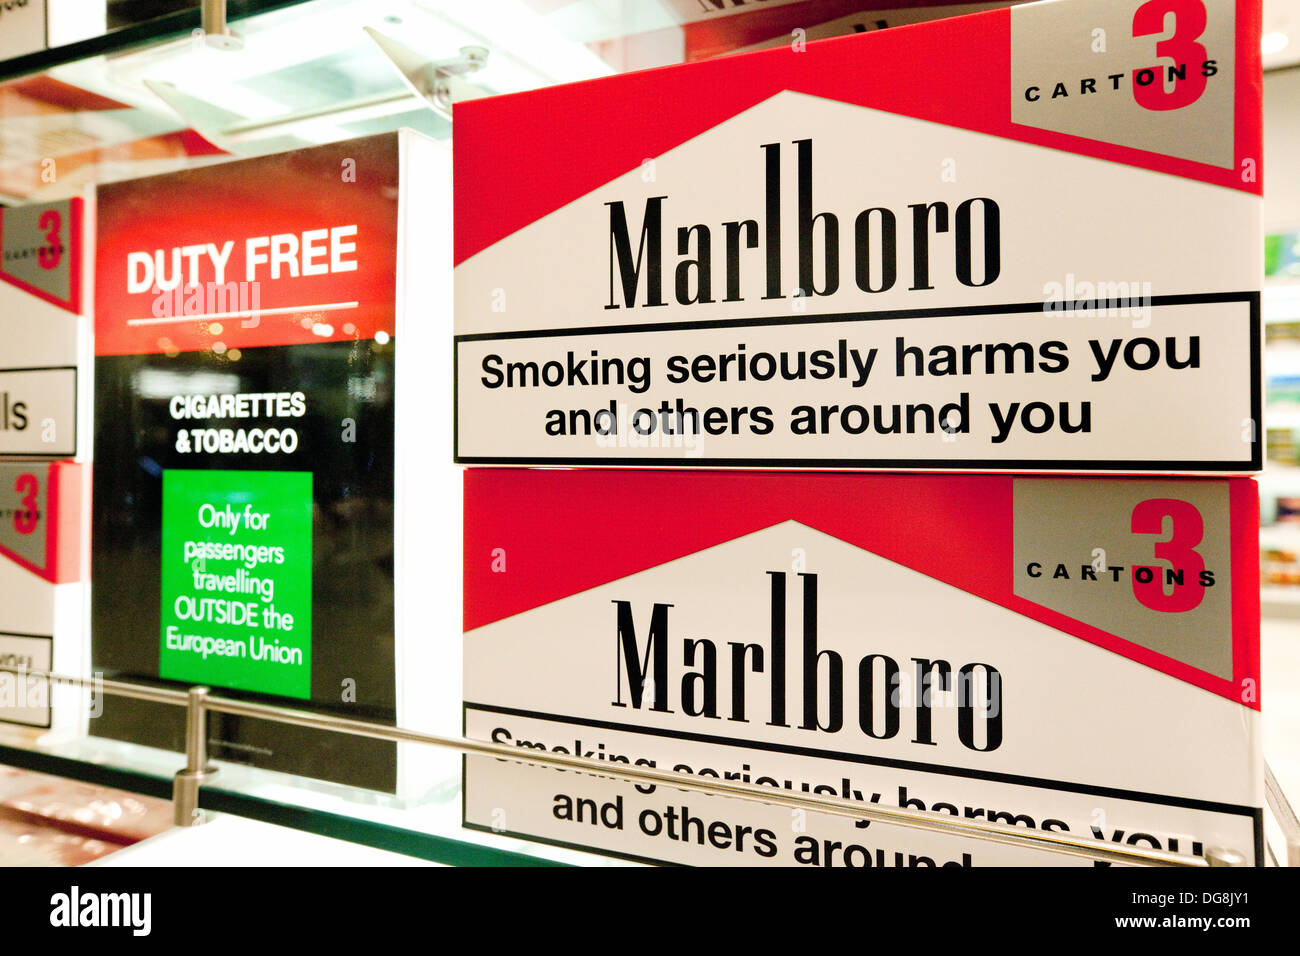 20 pack cigarettes Marlboro price